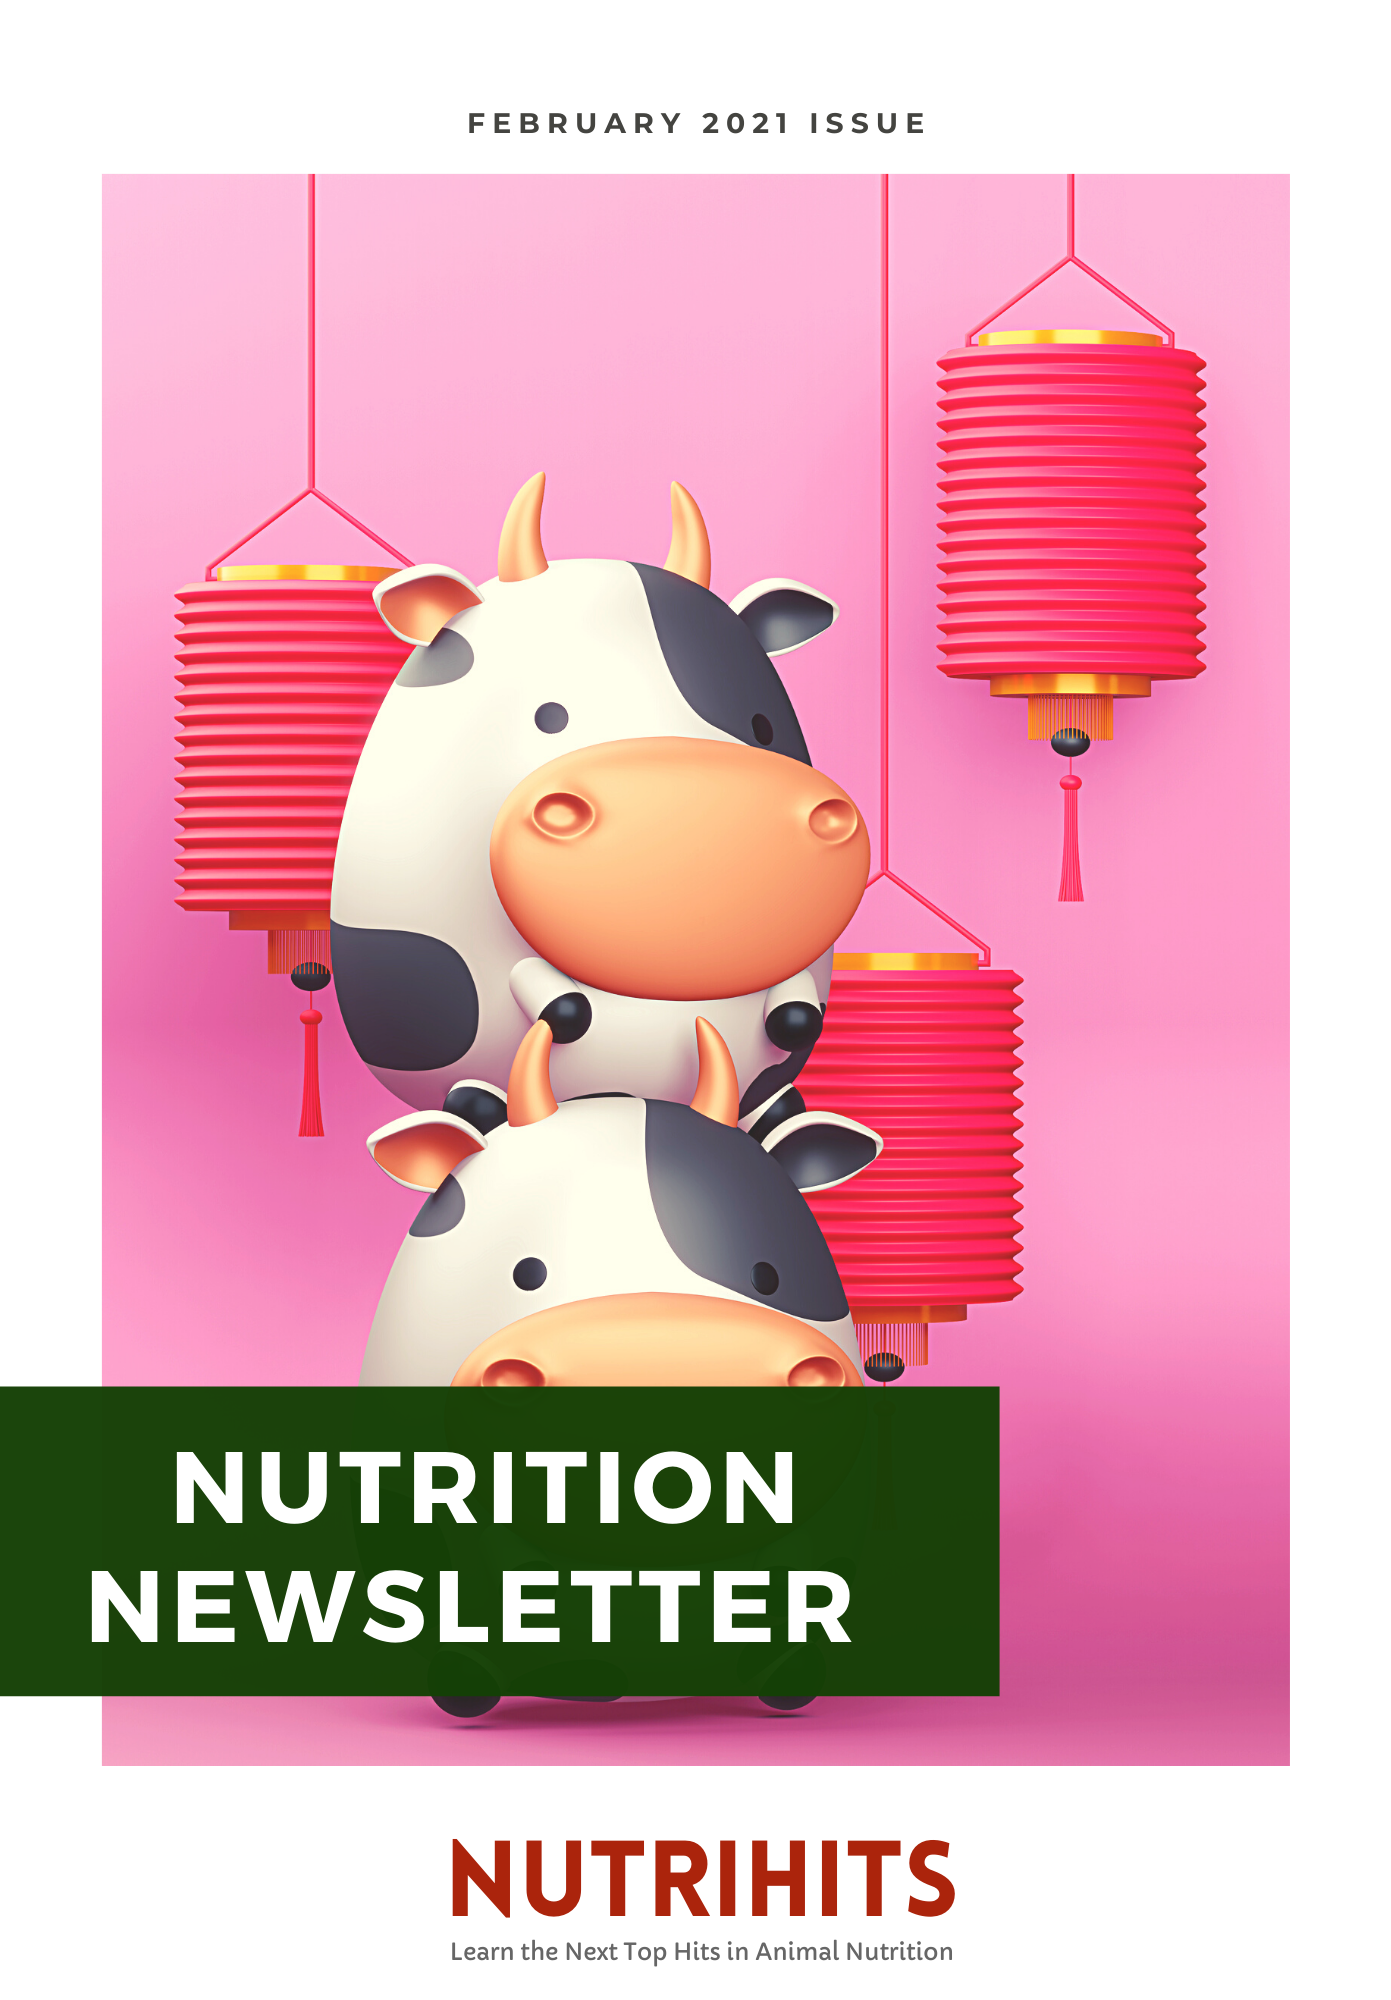 Nutrition Newsletter - February 2021